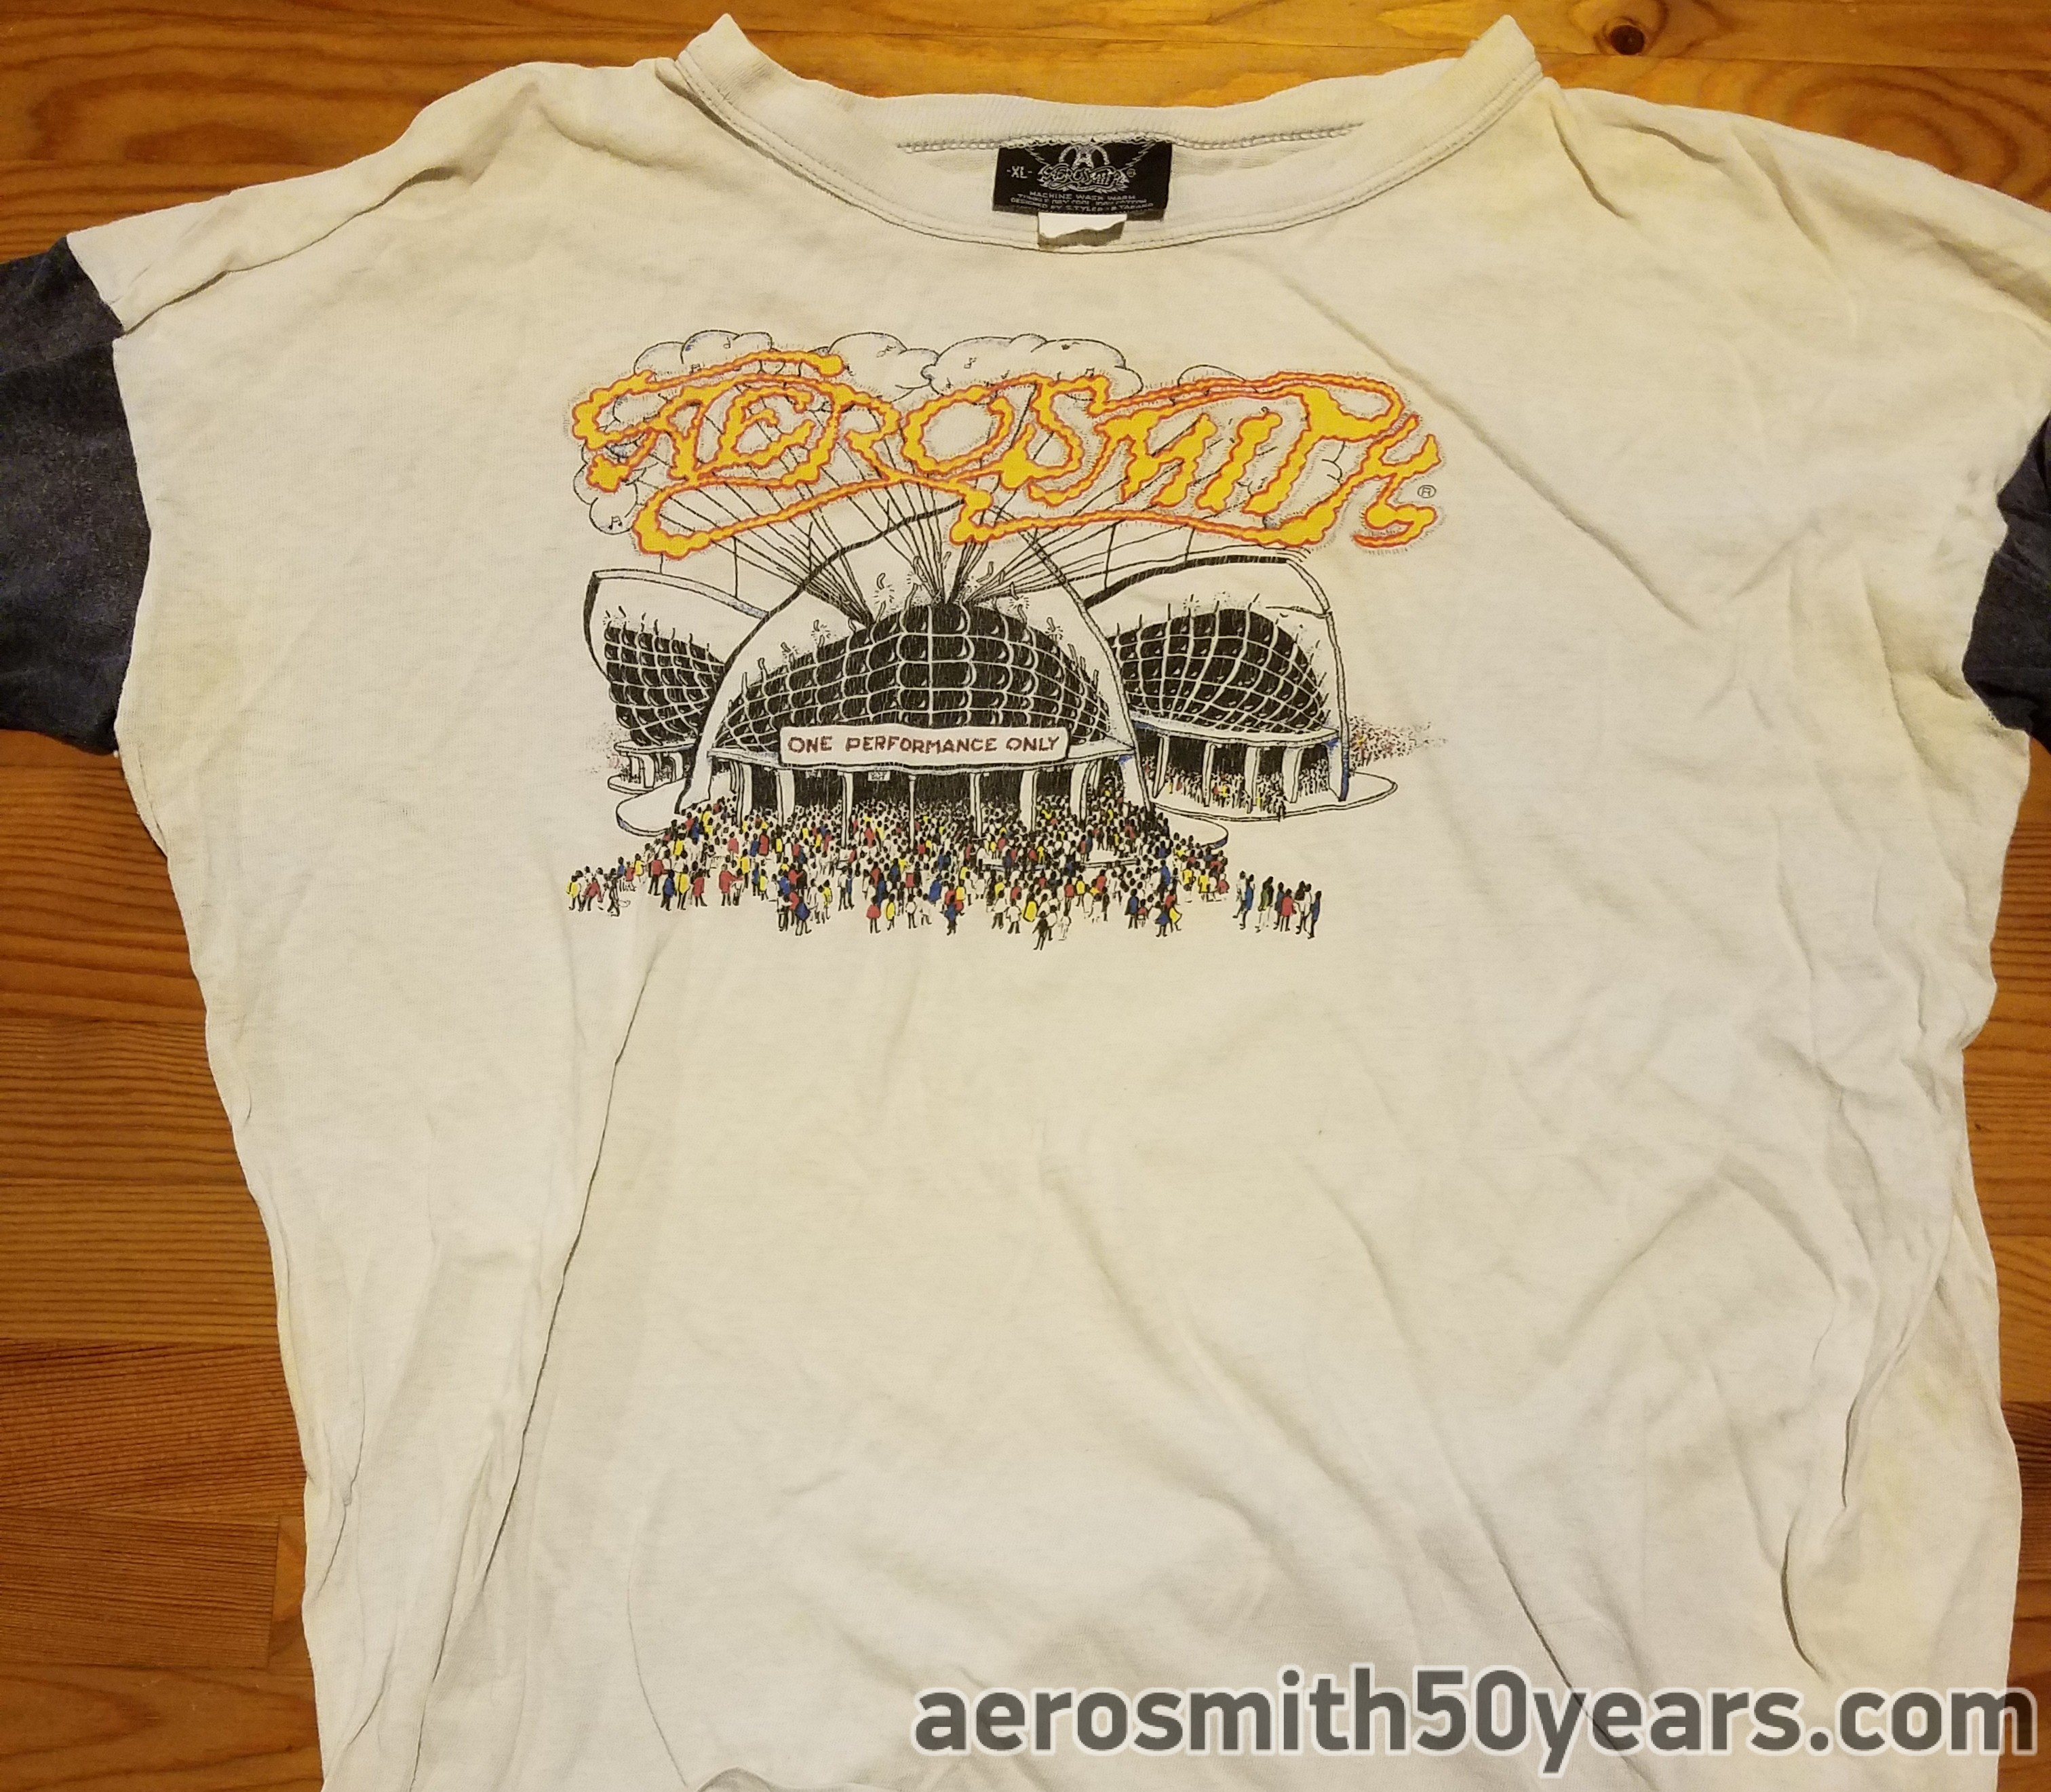 d05c87153 Bootleg Tour Shirt- Special One Performance Only. Designed By Ray Tabano & Steven  Tyler